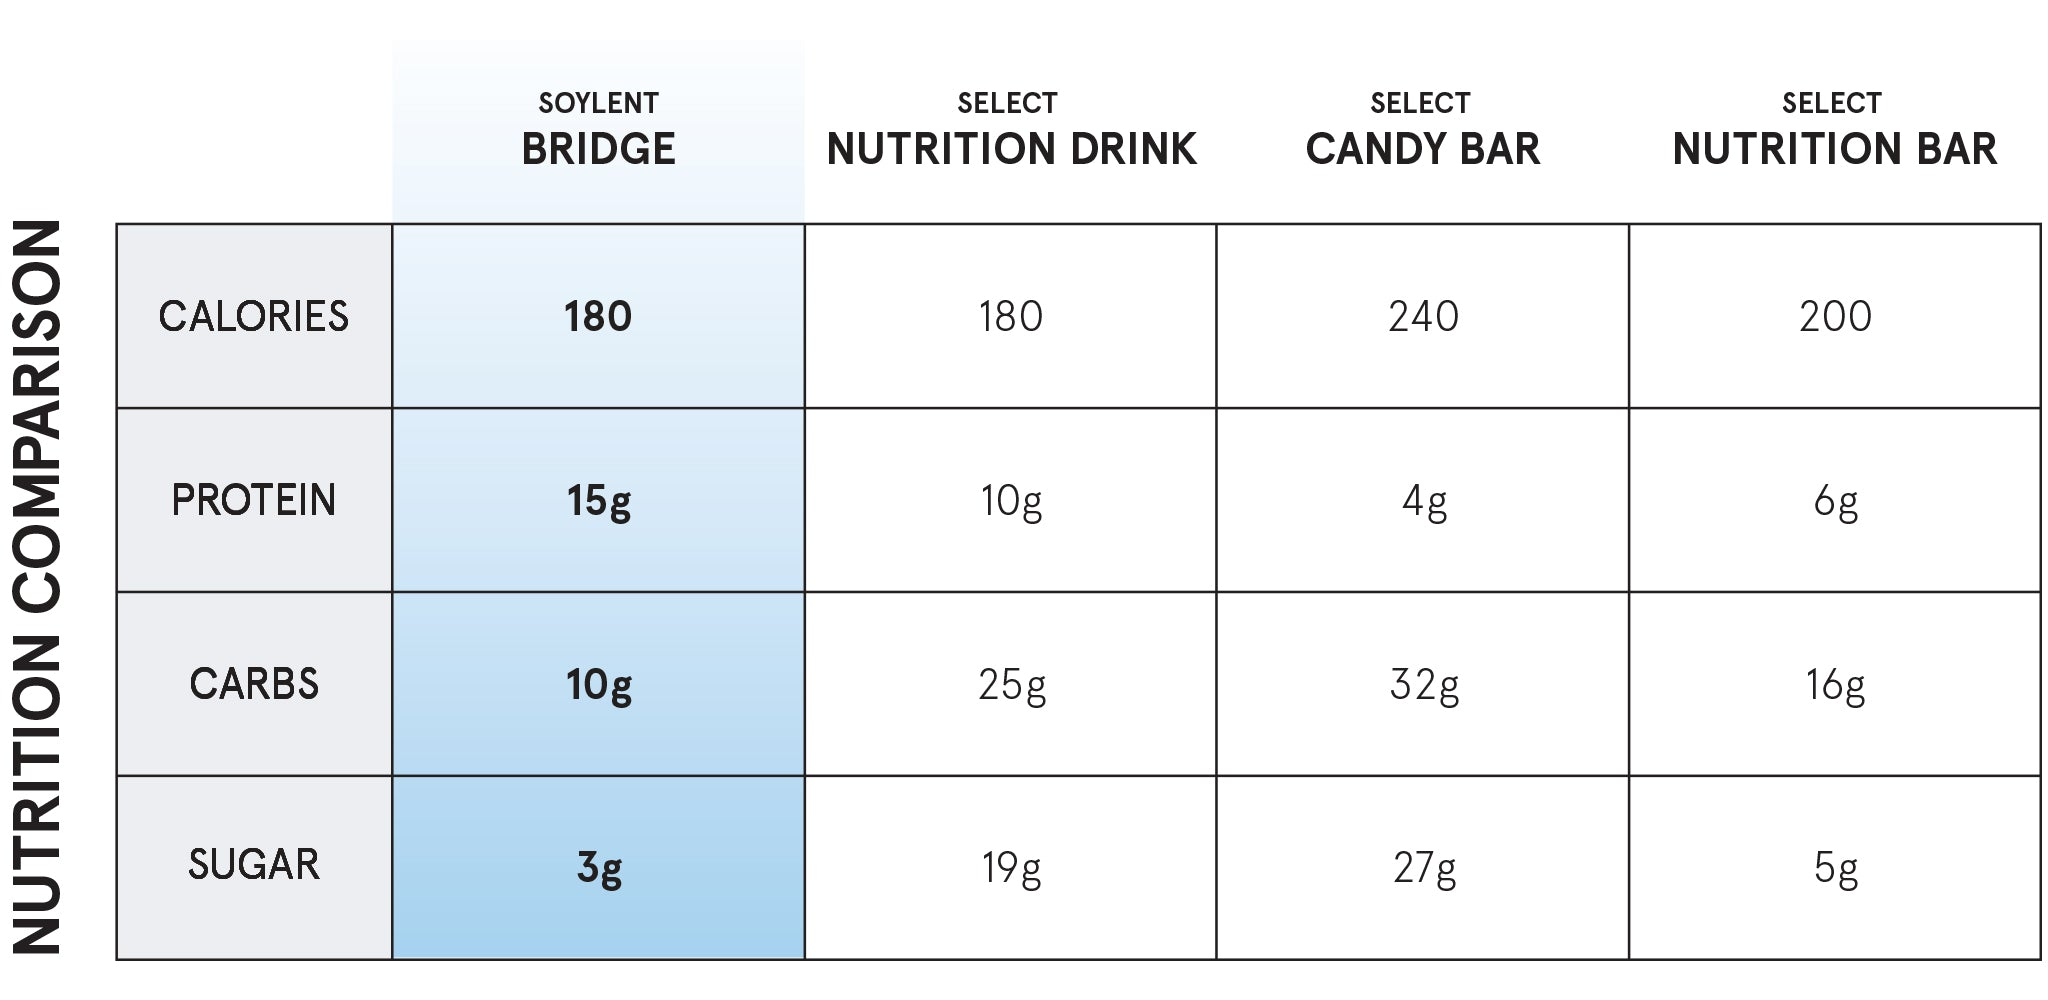 Soylent Bridge Comparison Chart